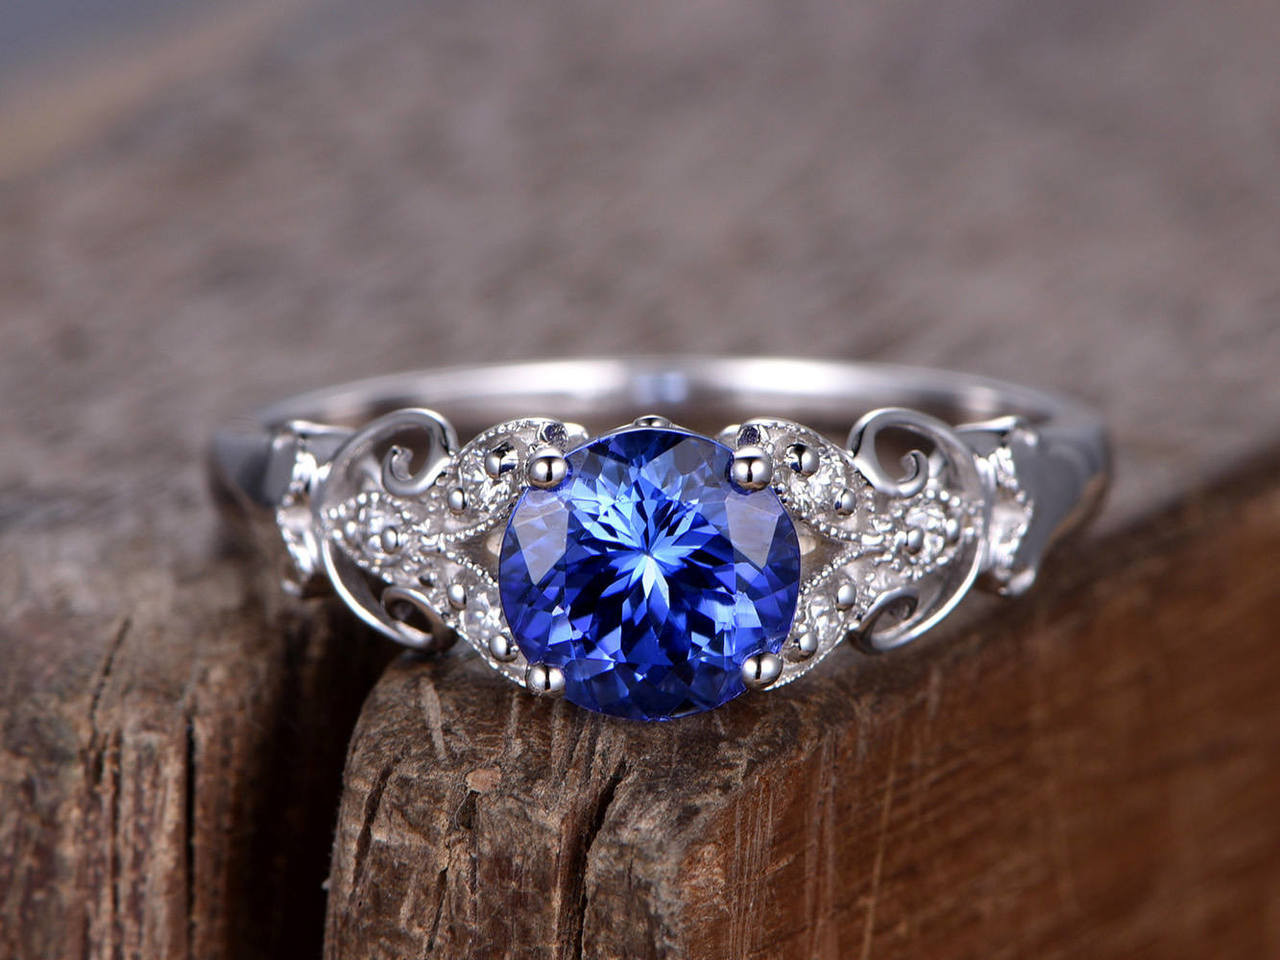 cut engagement ring jewellery blue sapphire rings cushion bluehalosapphirering halo price product wholesale hand